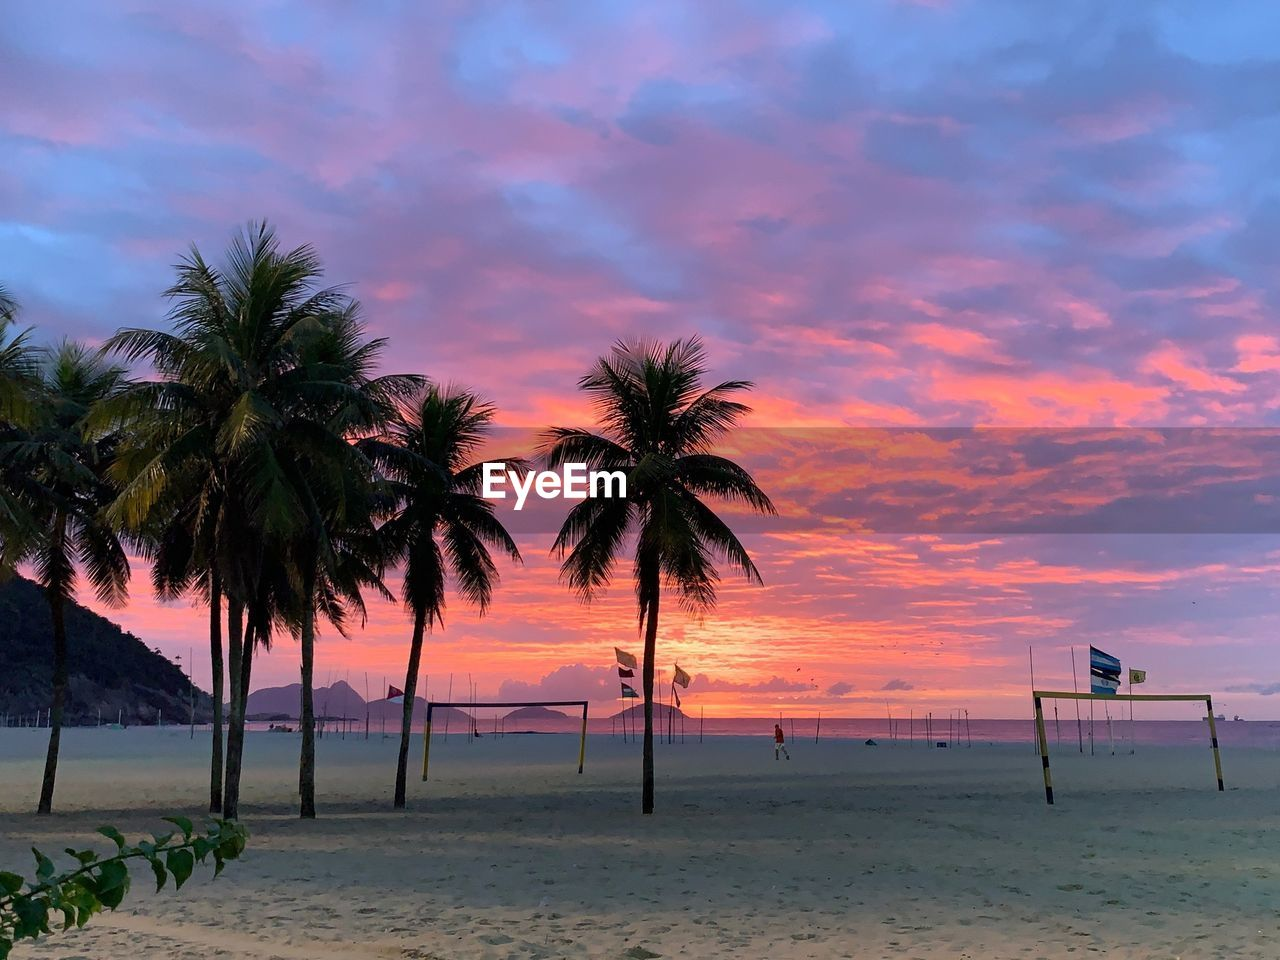 palm tree, sky, tropical climate, tree, beach, beauty in nature, sunset, cloud - sky, land, scenics - nature, water, plant, tranquility, tranquil scene, nature, sea, sand, orange color, no people, outdoors, horizon over water, coconut palm tree, tropical tree